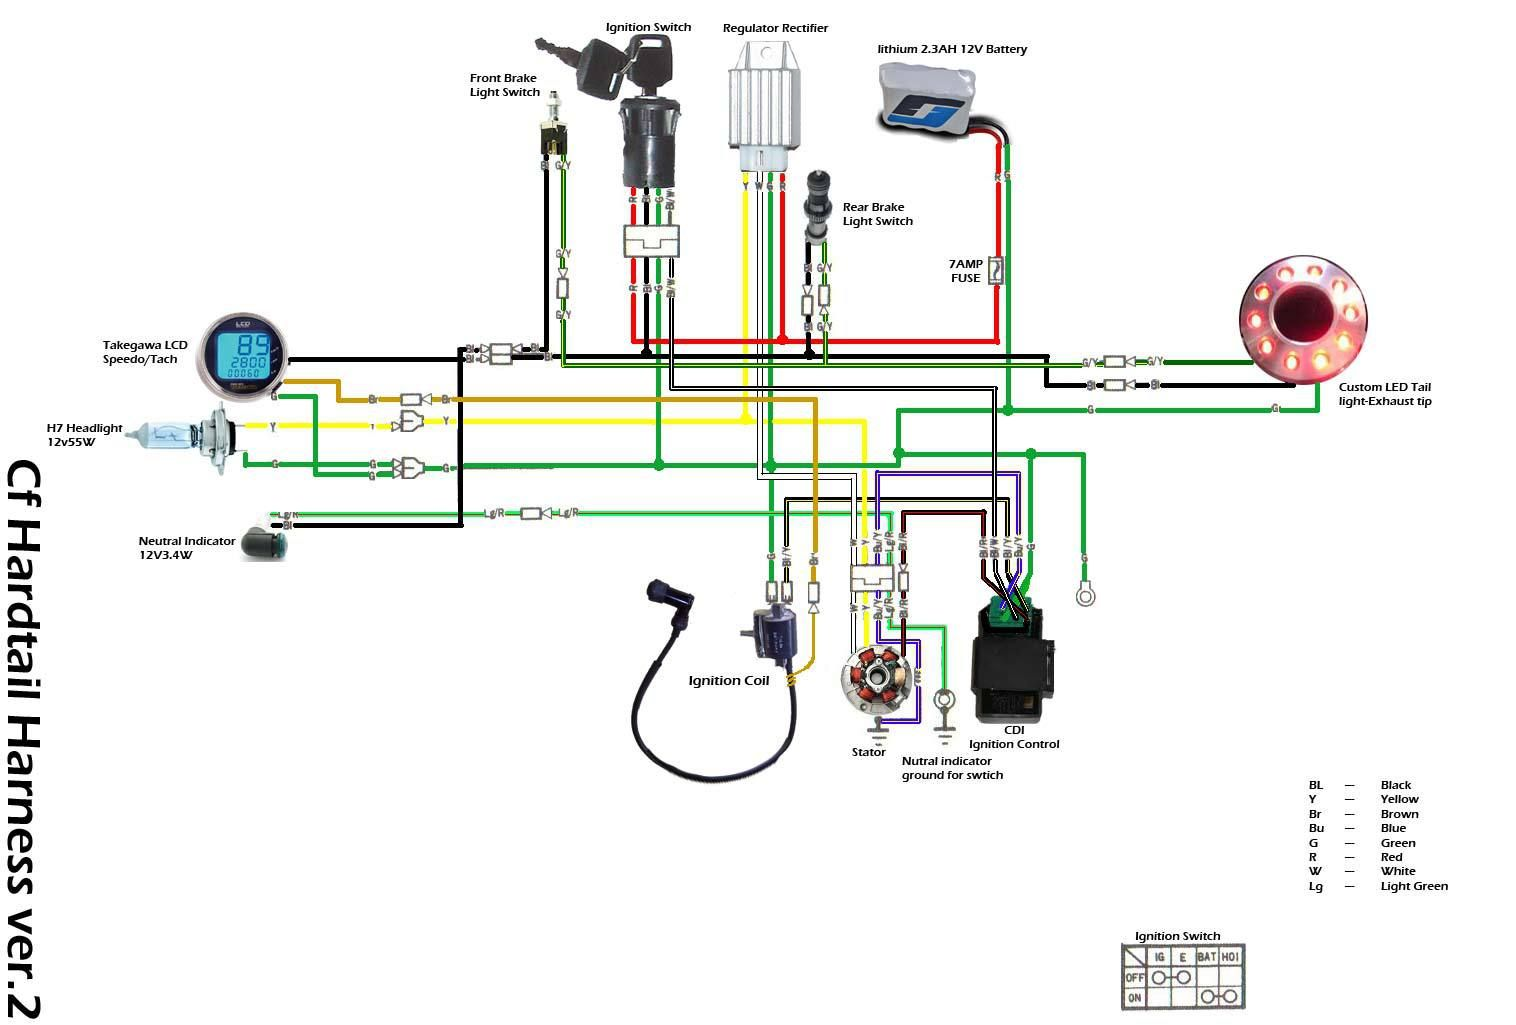 Generator Drain Plug Location Free Download Wiring Diagram Schematic